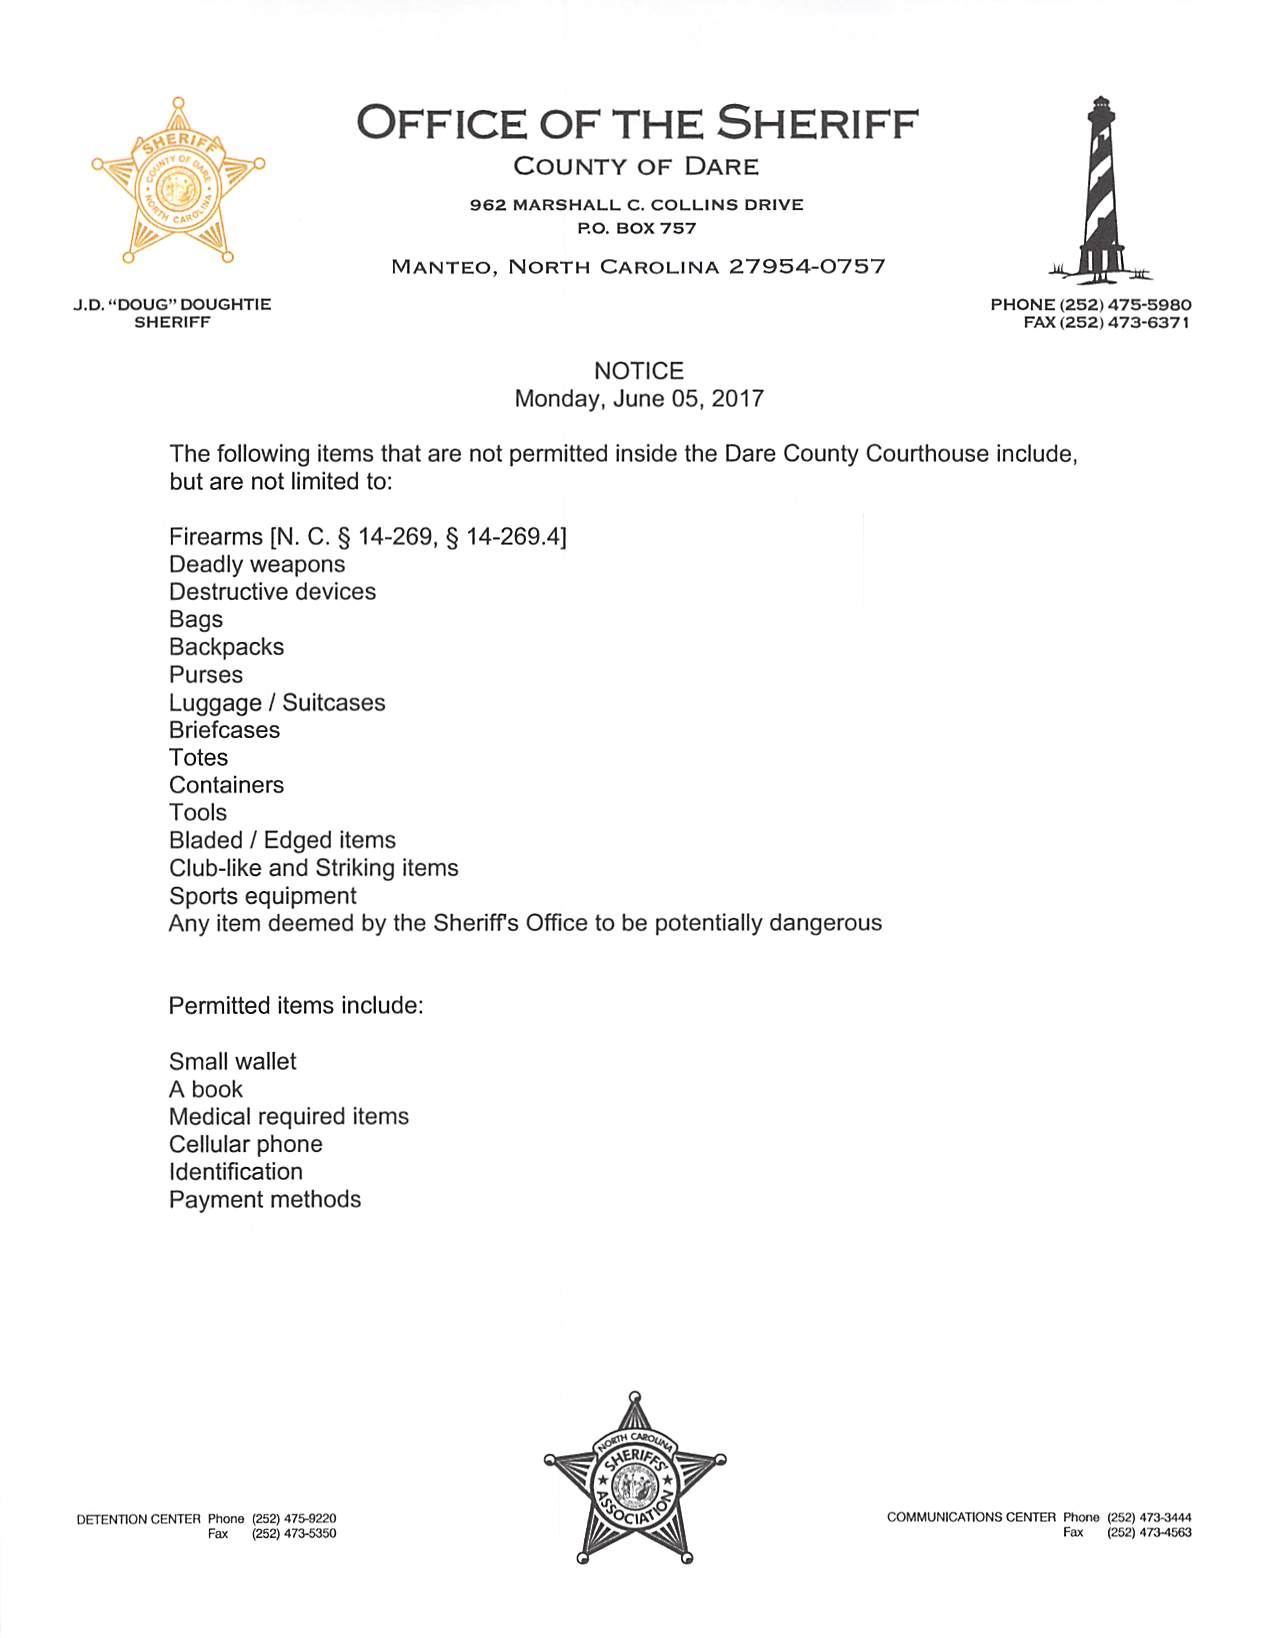 List of Items Not Allowed in Courthouse